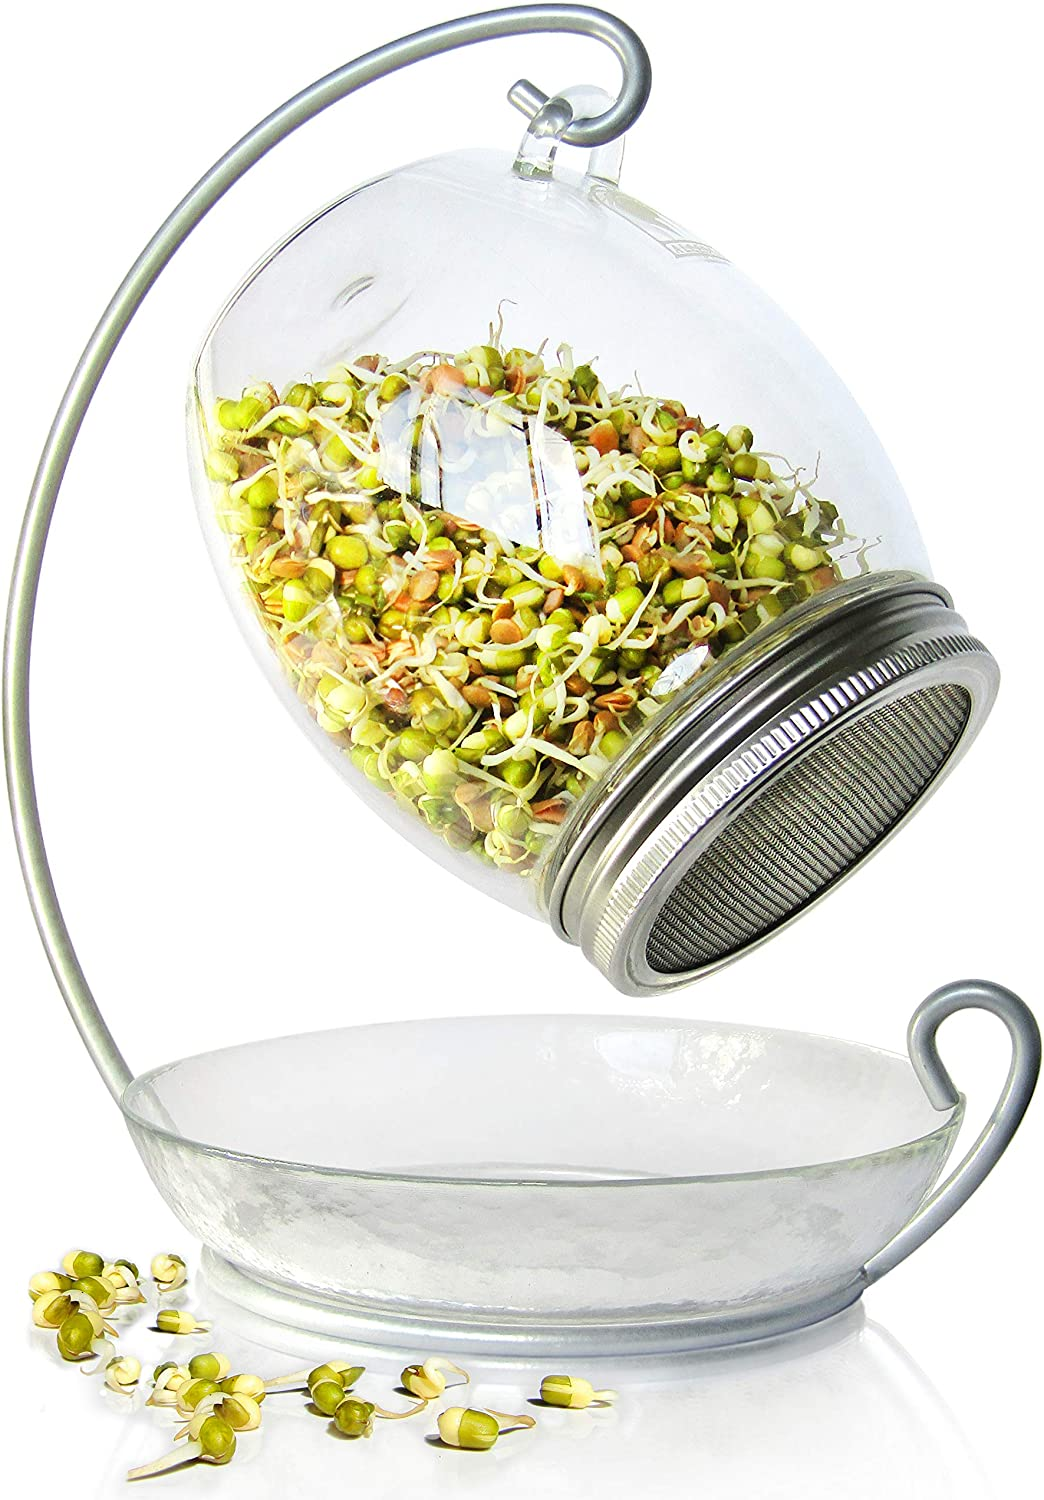 Premium Sprouting Kit Includes Unique 30 oz Wide Mouth Sprouting Jar, Stand, Tray and Sprouting Lid | Decorative Indoor Seed Sprouter and Germinator (1 Kit)